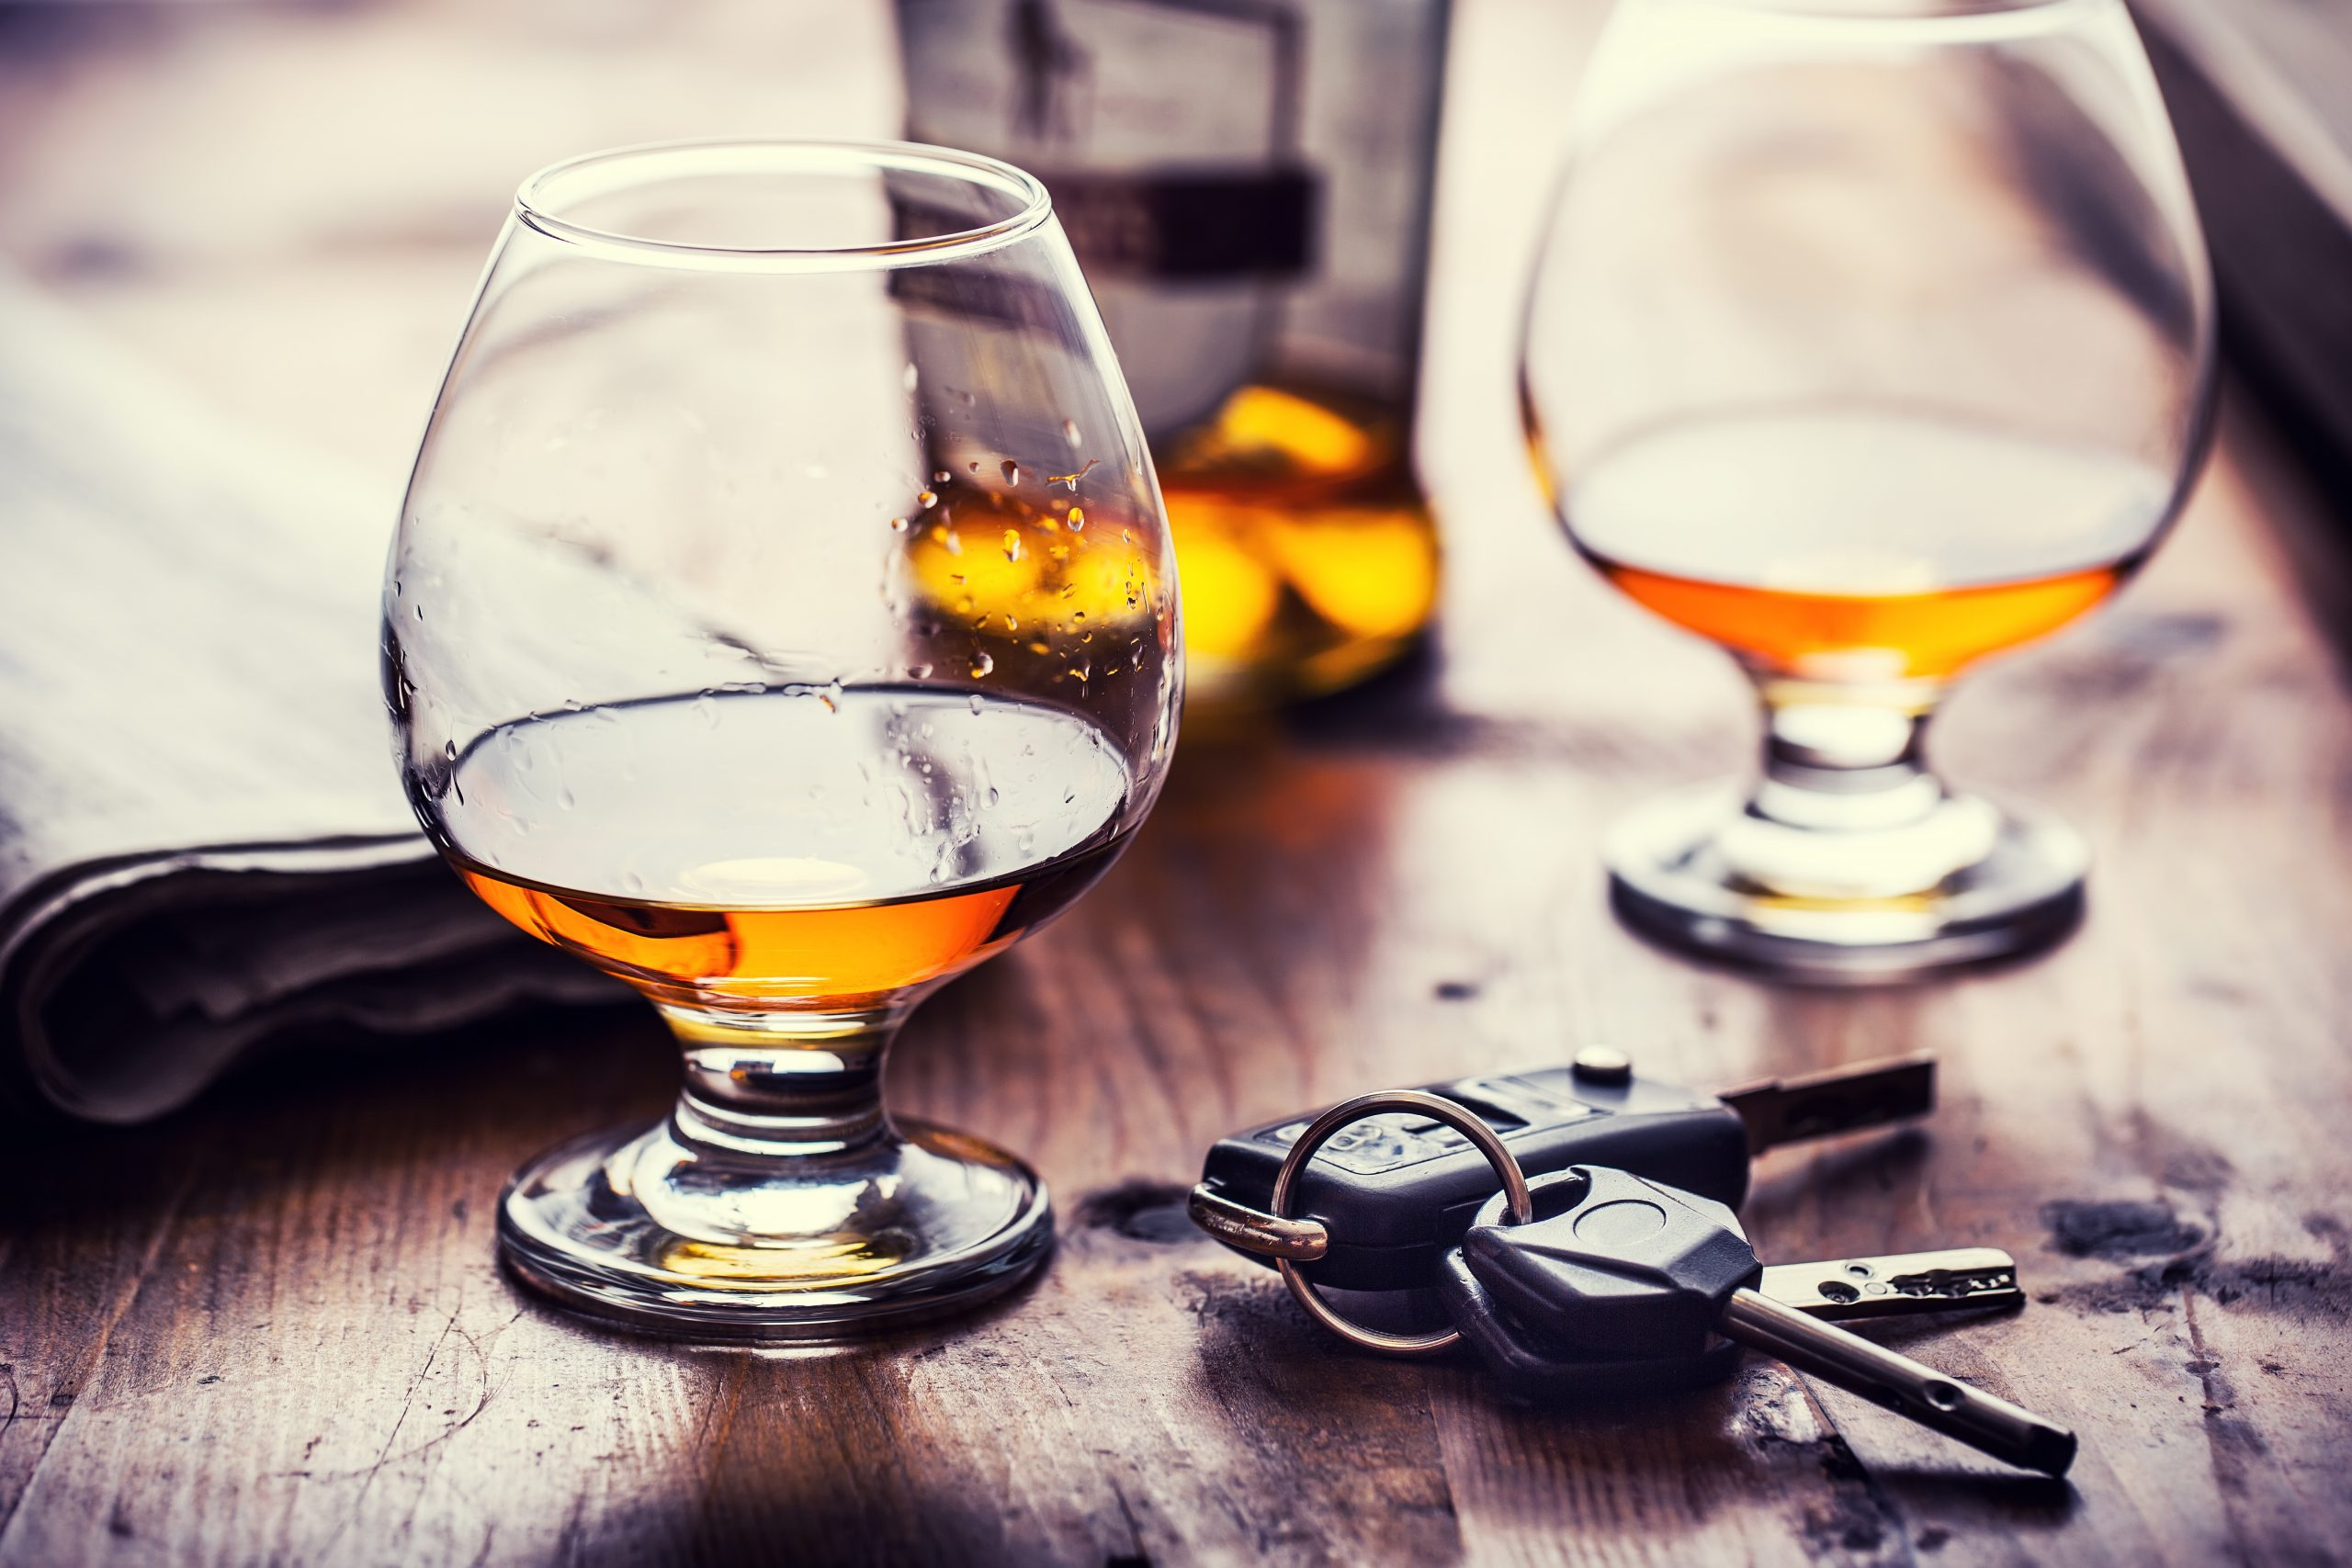 Minnesota DWI Defense | You Can Get a DWI if You're Under .08